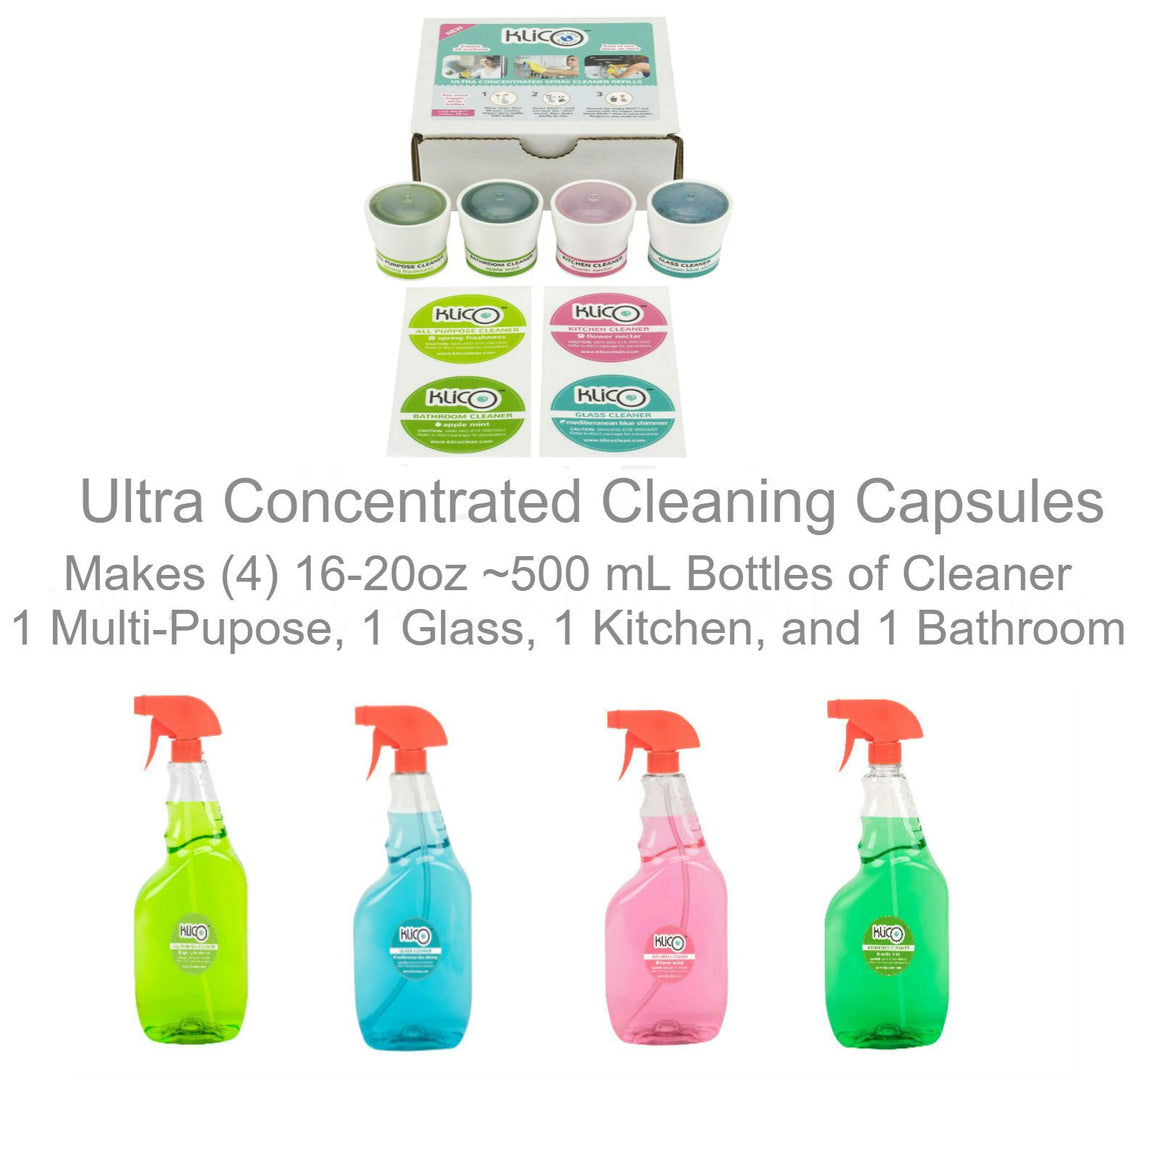 KlicO Eco-Friendly Ultra Concentrate Cleaner Refill Capsules 1 each; Multi-Purpose, Window, Kitchen, and Bathroom with 1 Trigger Spray Bottle